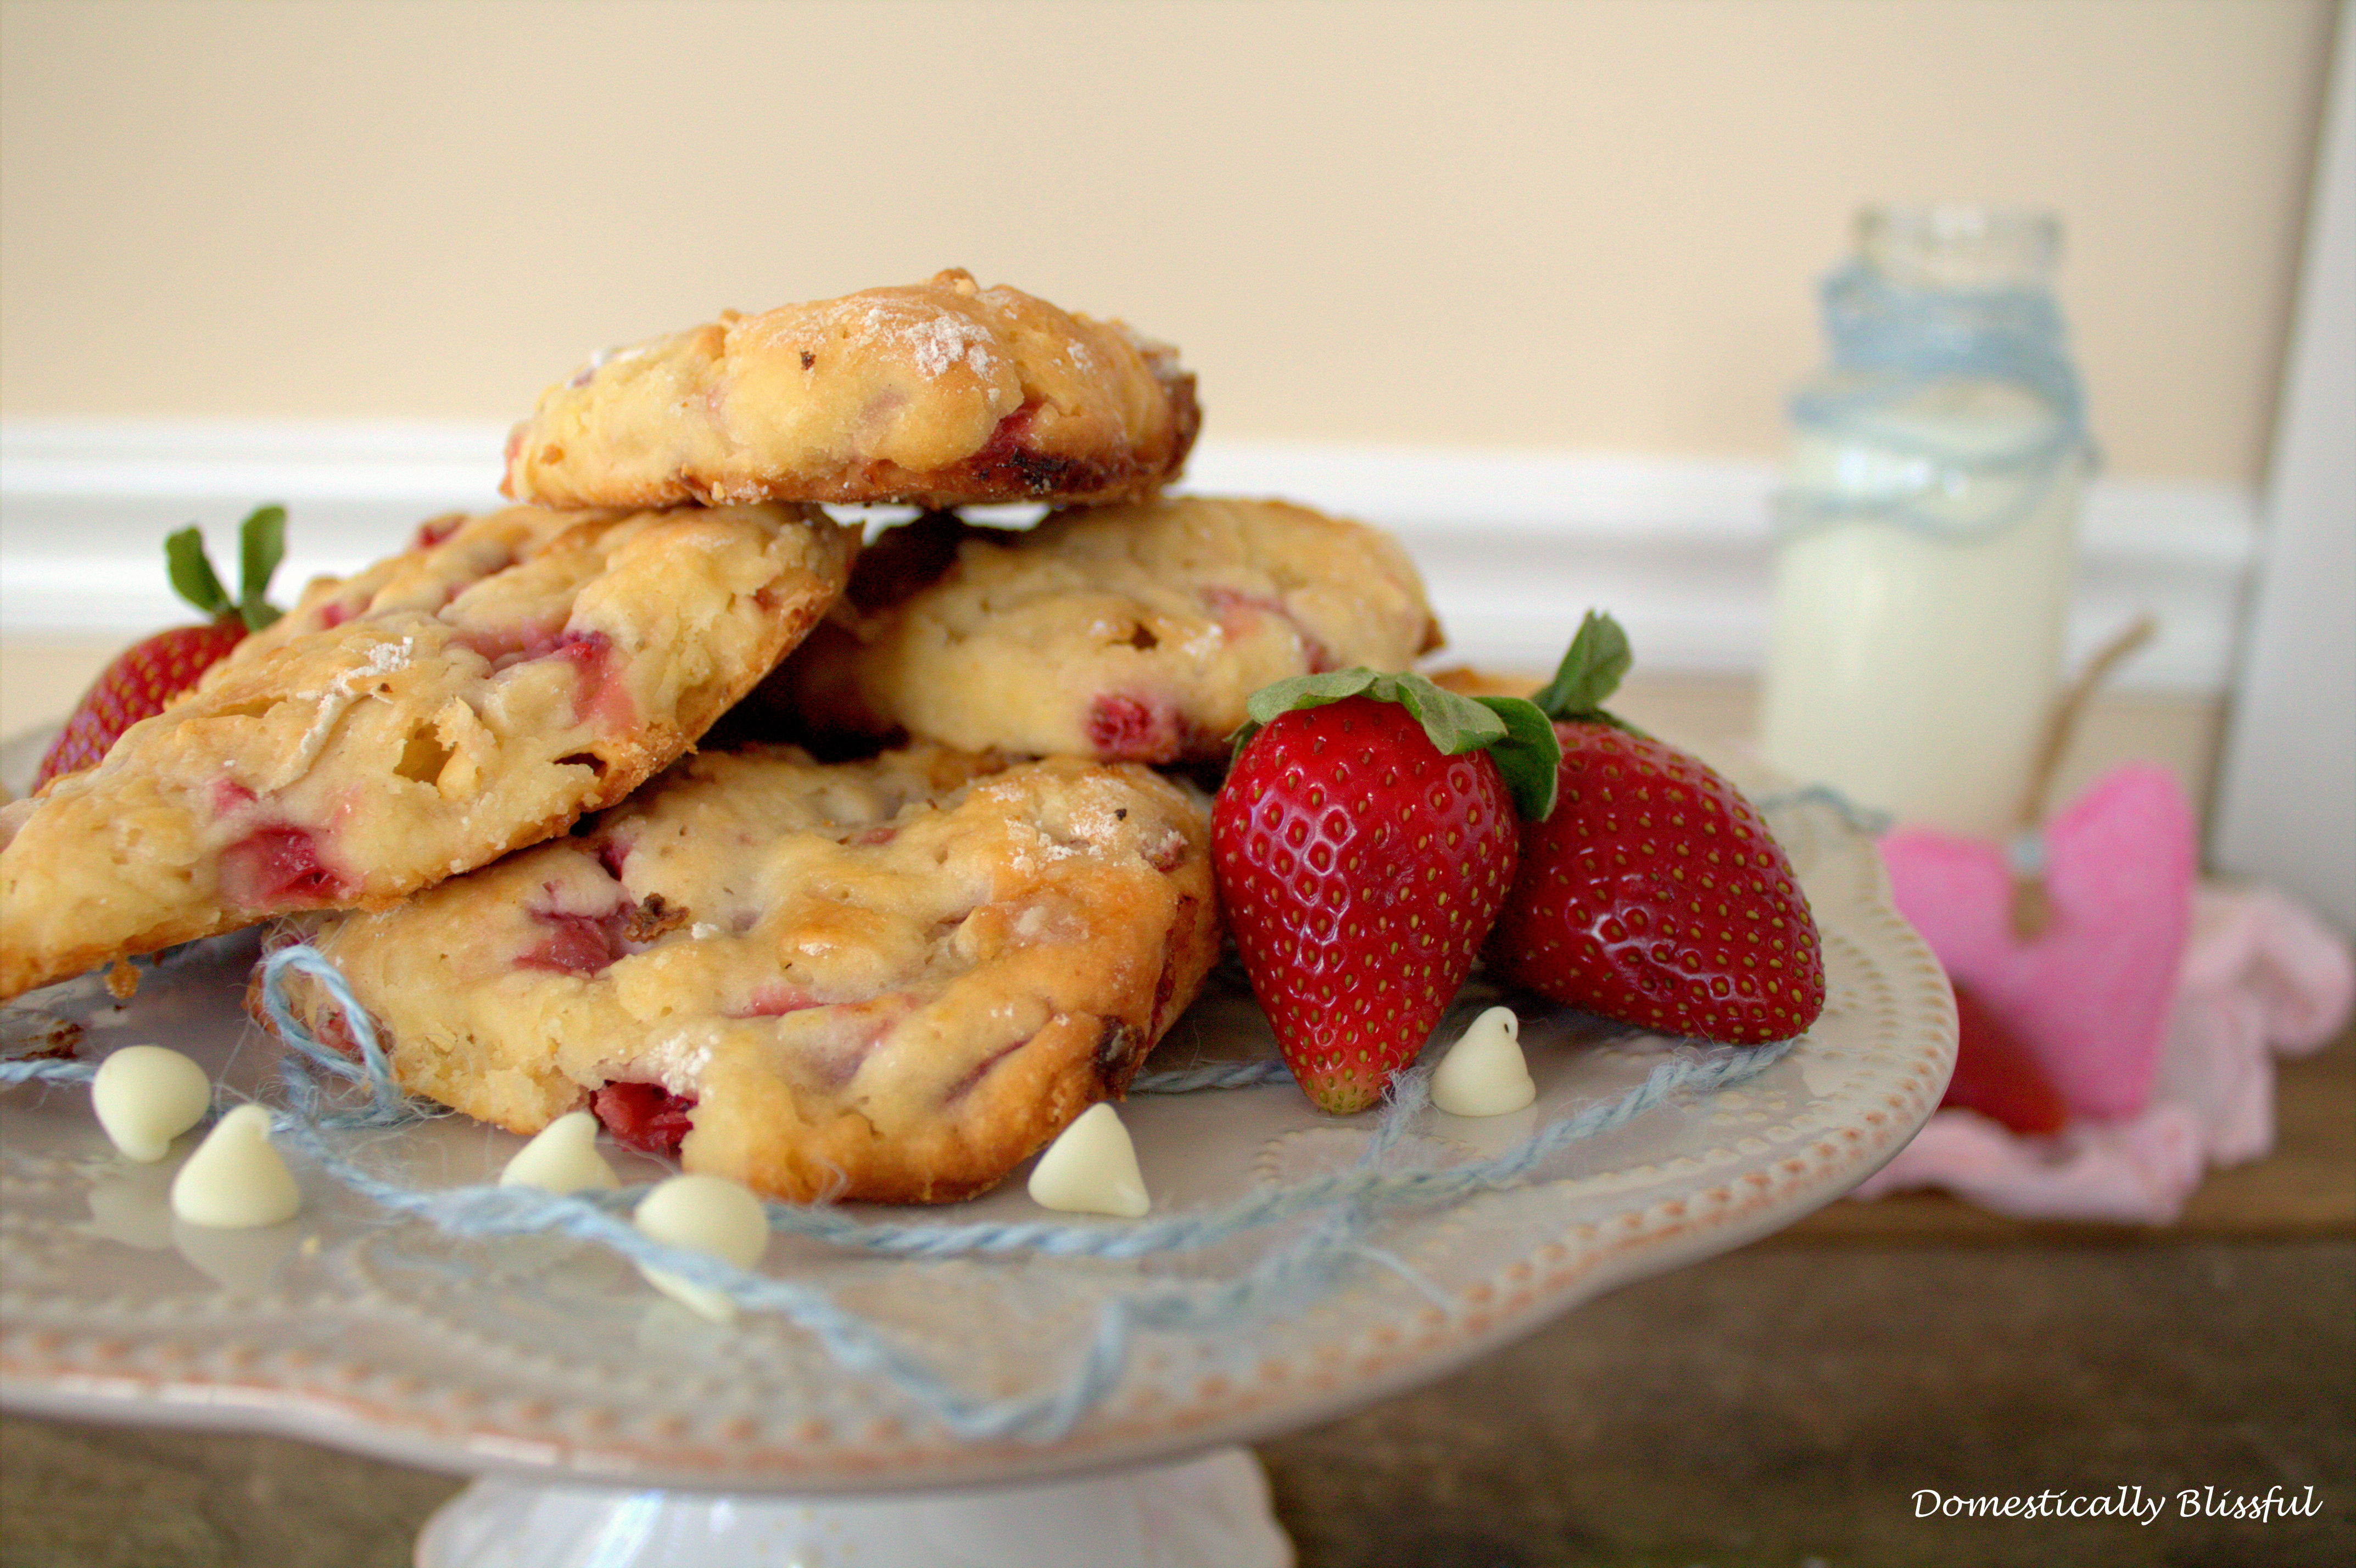 White Chocolate and Strawberries in Scones